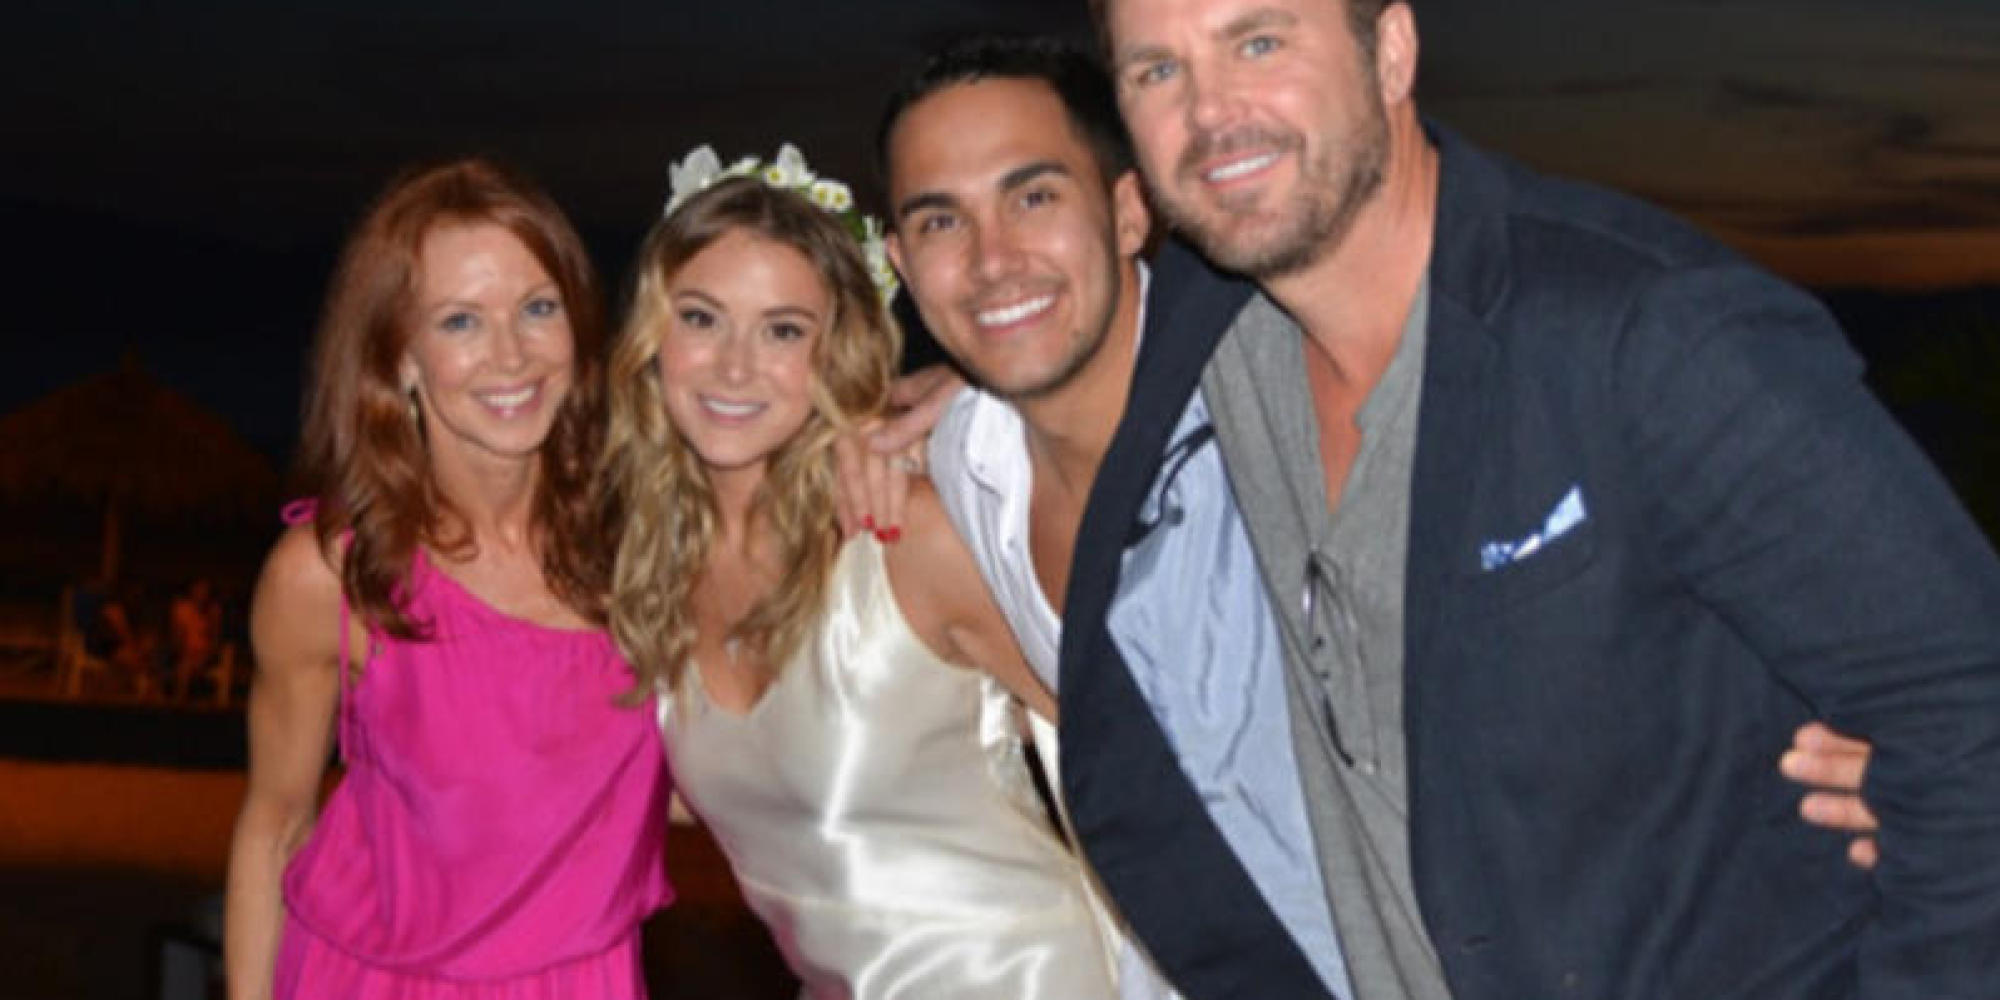 Alexa Vega Marries Carlos Pena After Two Months Of Engagement Updated Huffpost